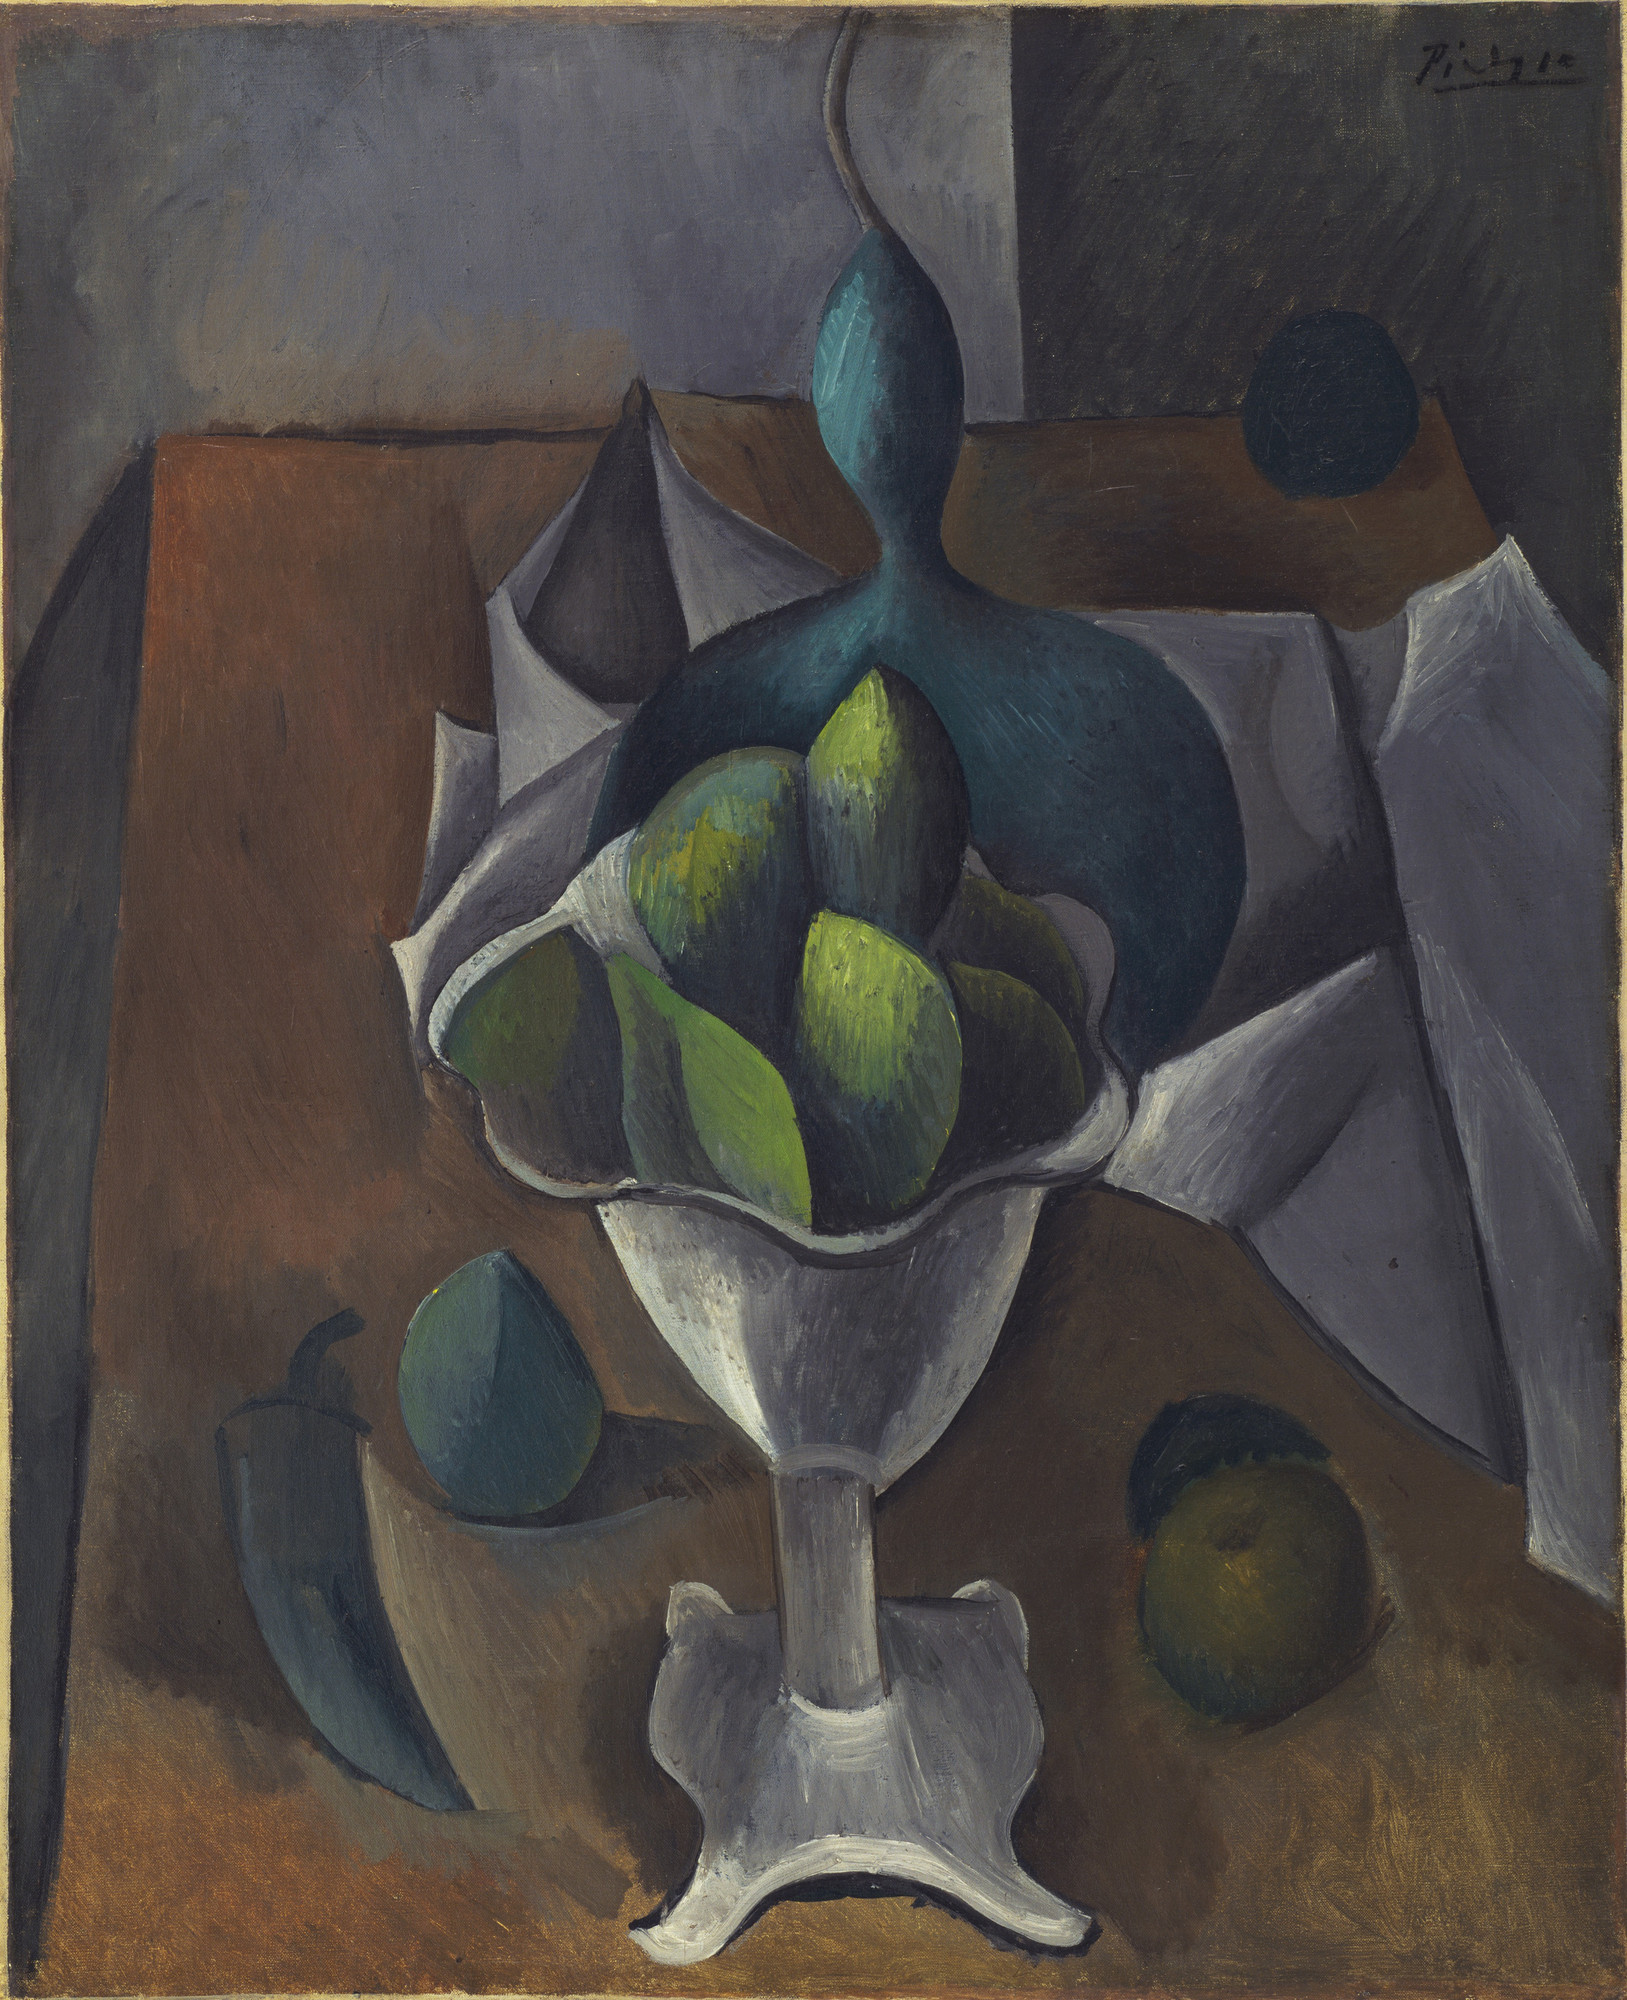 Pablo Picasso. Fruit Dish. Paris, winter 1908-09